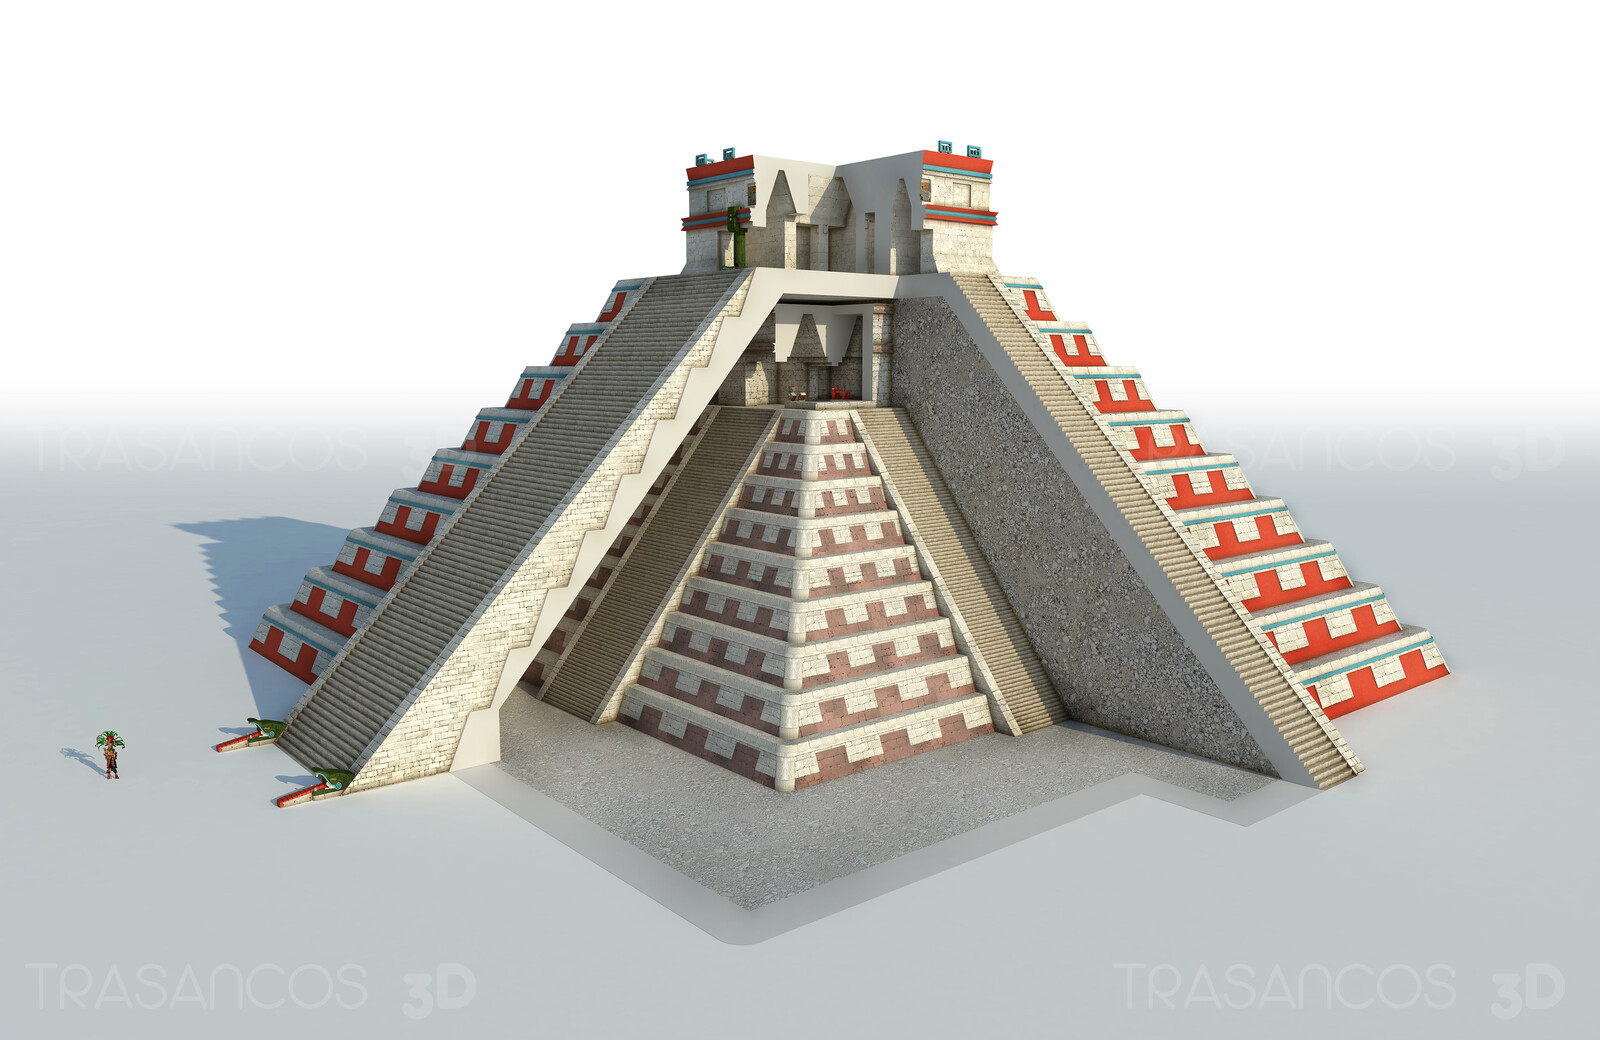 Cut away of Kukukan pyramid or 'El Castillo' in Chichen Itza, showing the ancient inner temple. Modeled in collaboration with: - Andrés Armesto